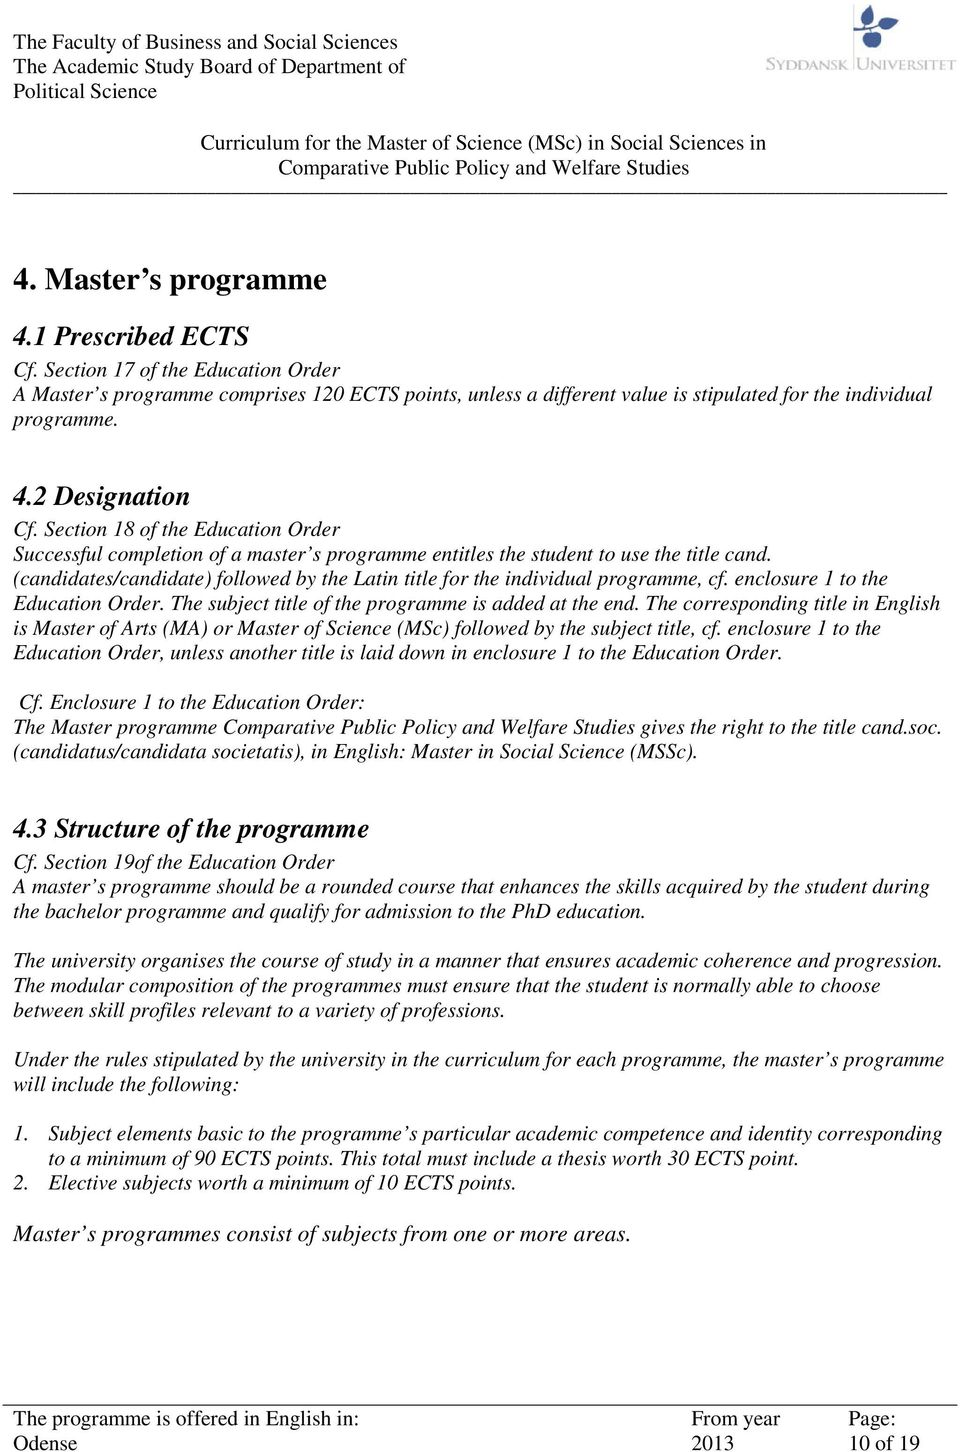 (candidates/candidate) followed by the Latin title for the individual programme, cf. enclosure 1 to the Education Order. The subject title of the programme is added at the end.